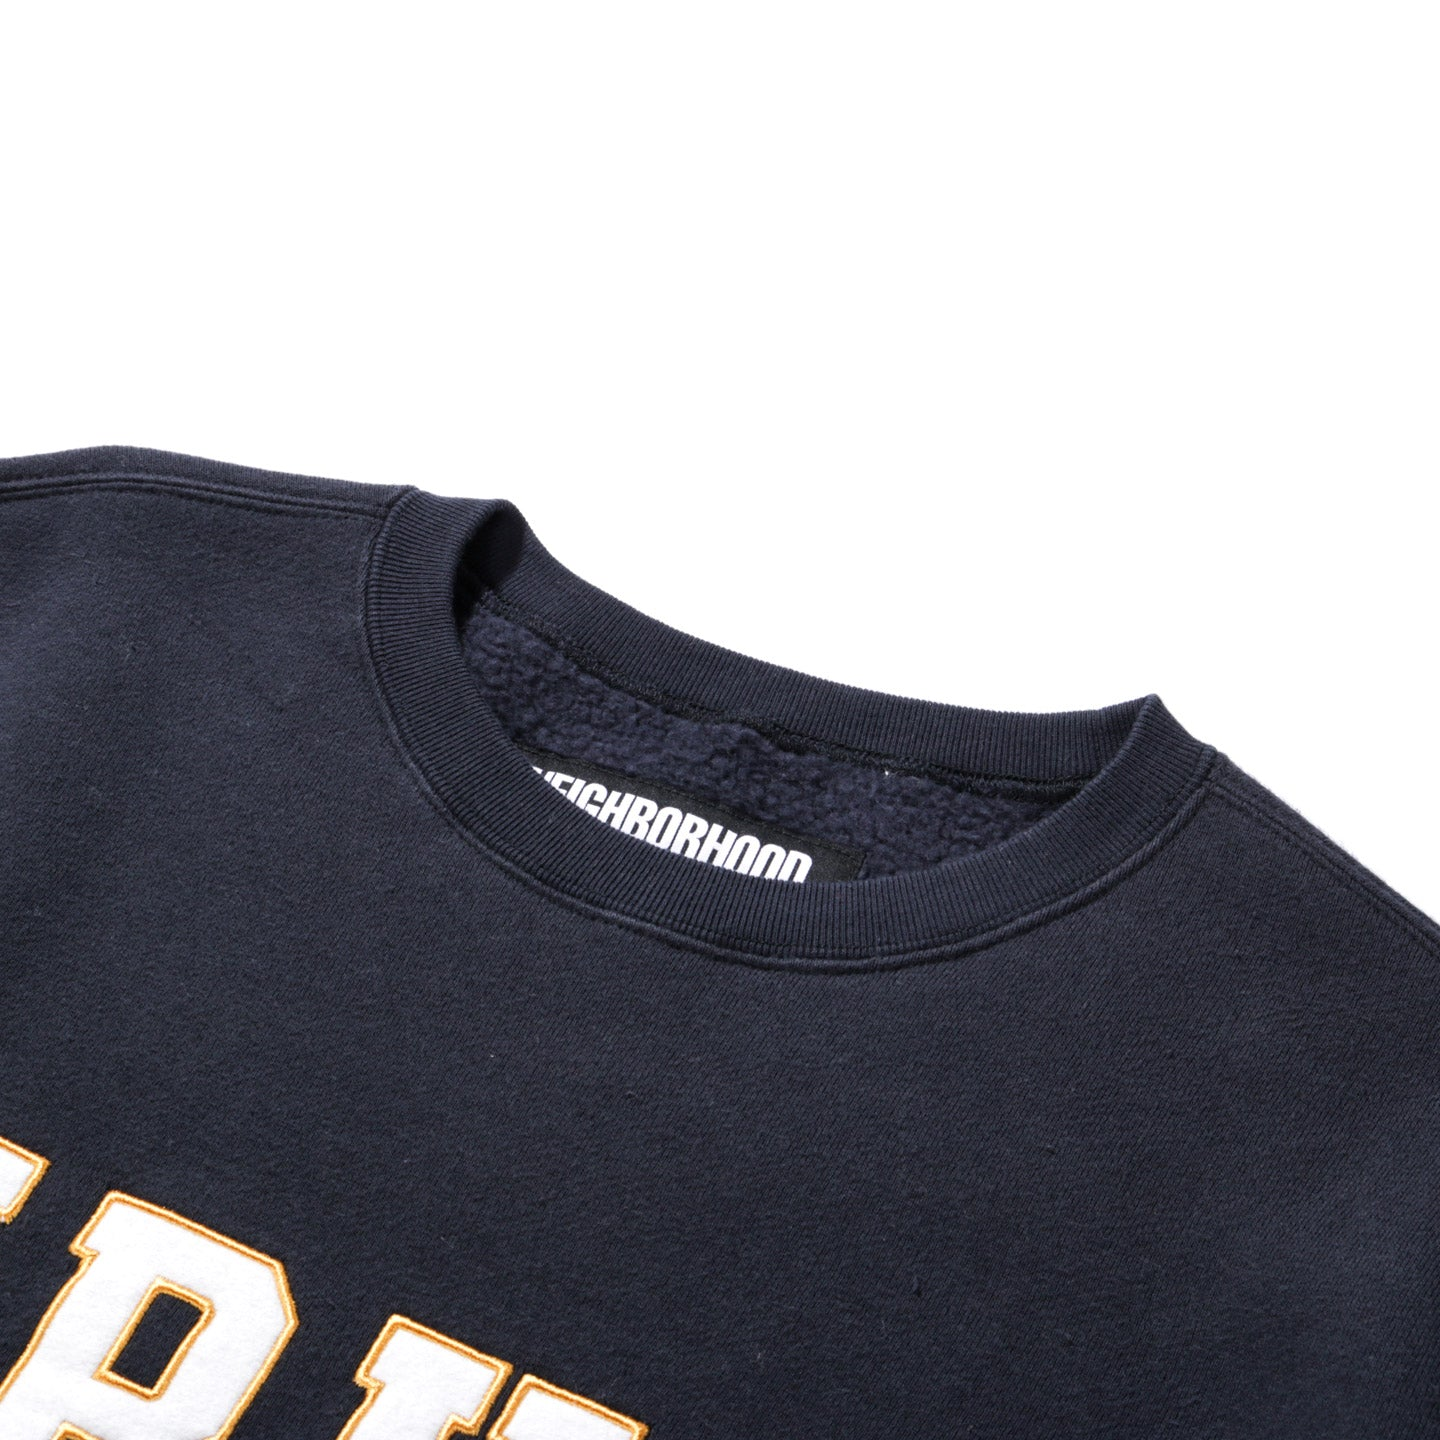 NEIGHBORHOOD LOGIC CREW SWEATSHIRT NAVY